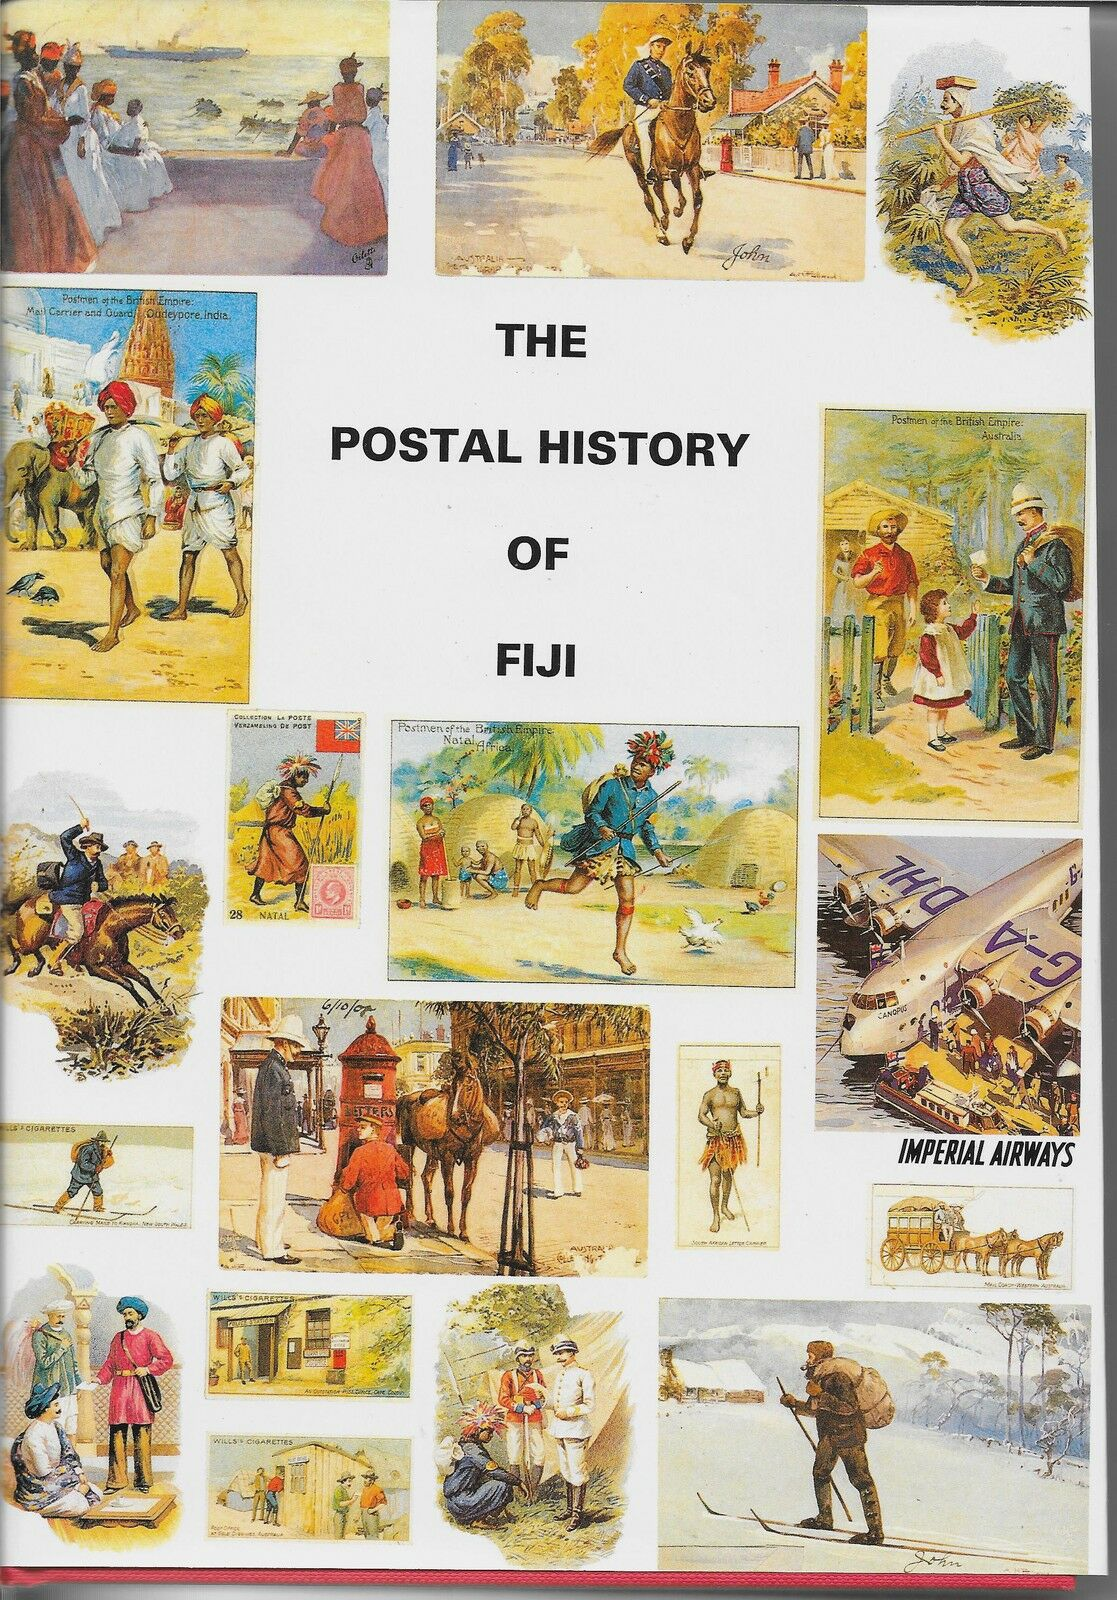 THE POSTAL HISTORY OF FIJI EDITTED BY E.B.PROUD